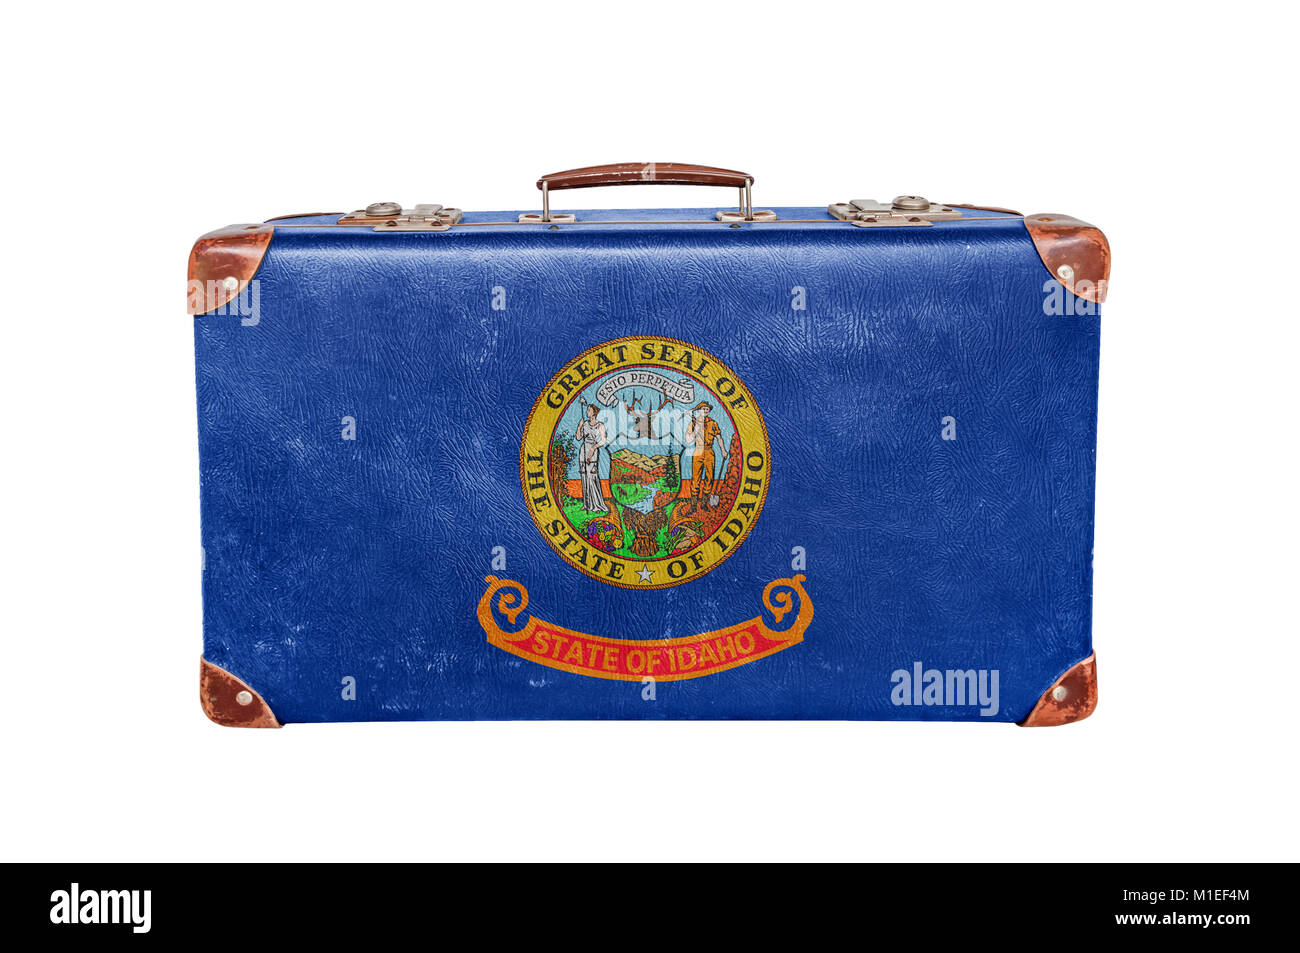 Vintage suitcase with United states Idaho flag - Stock Image